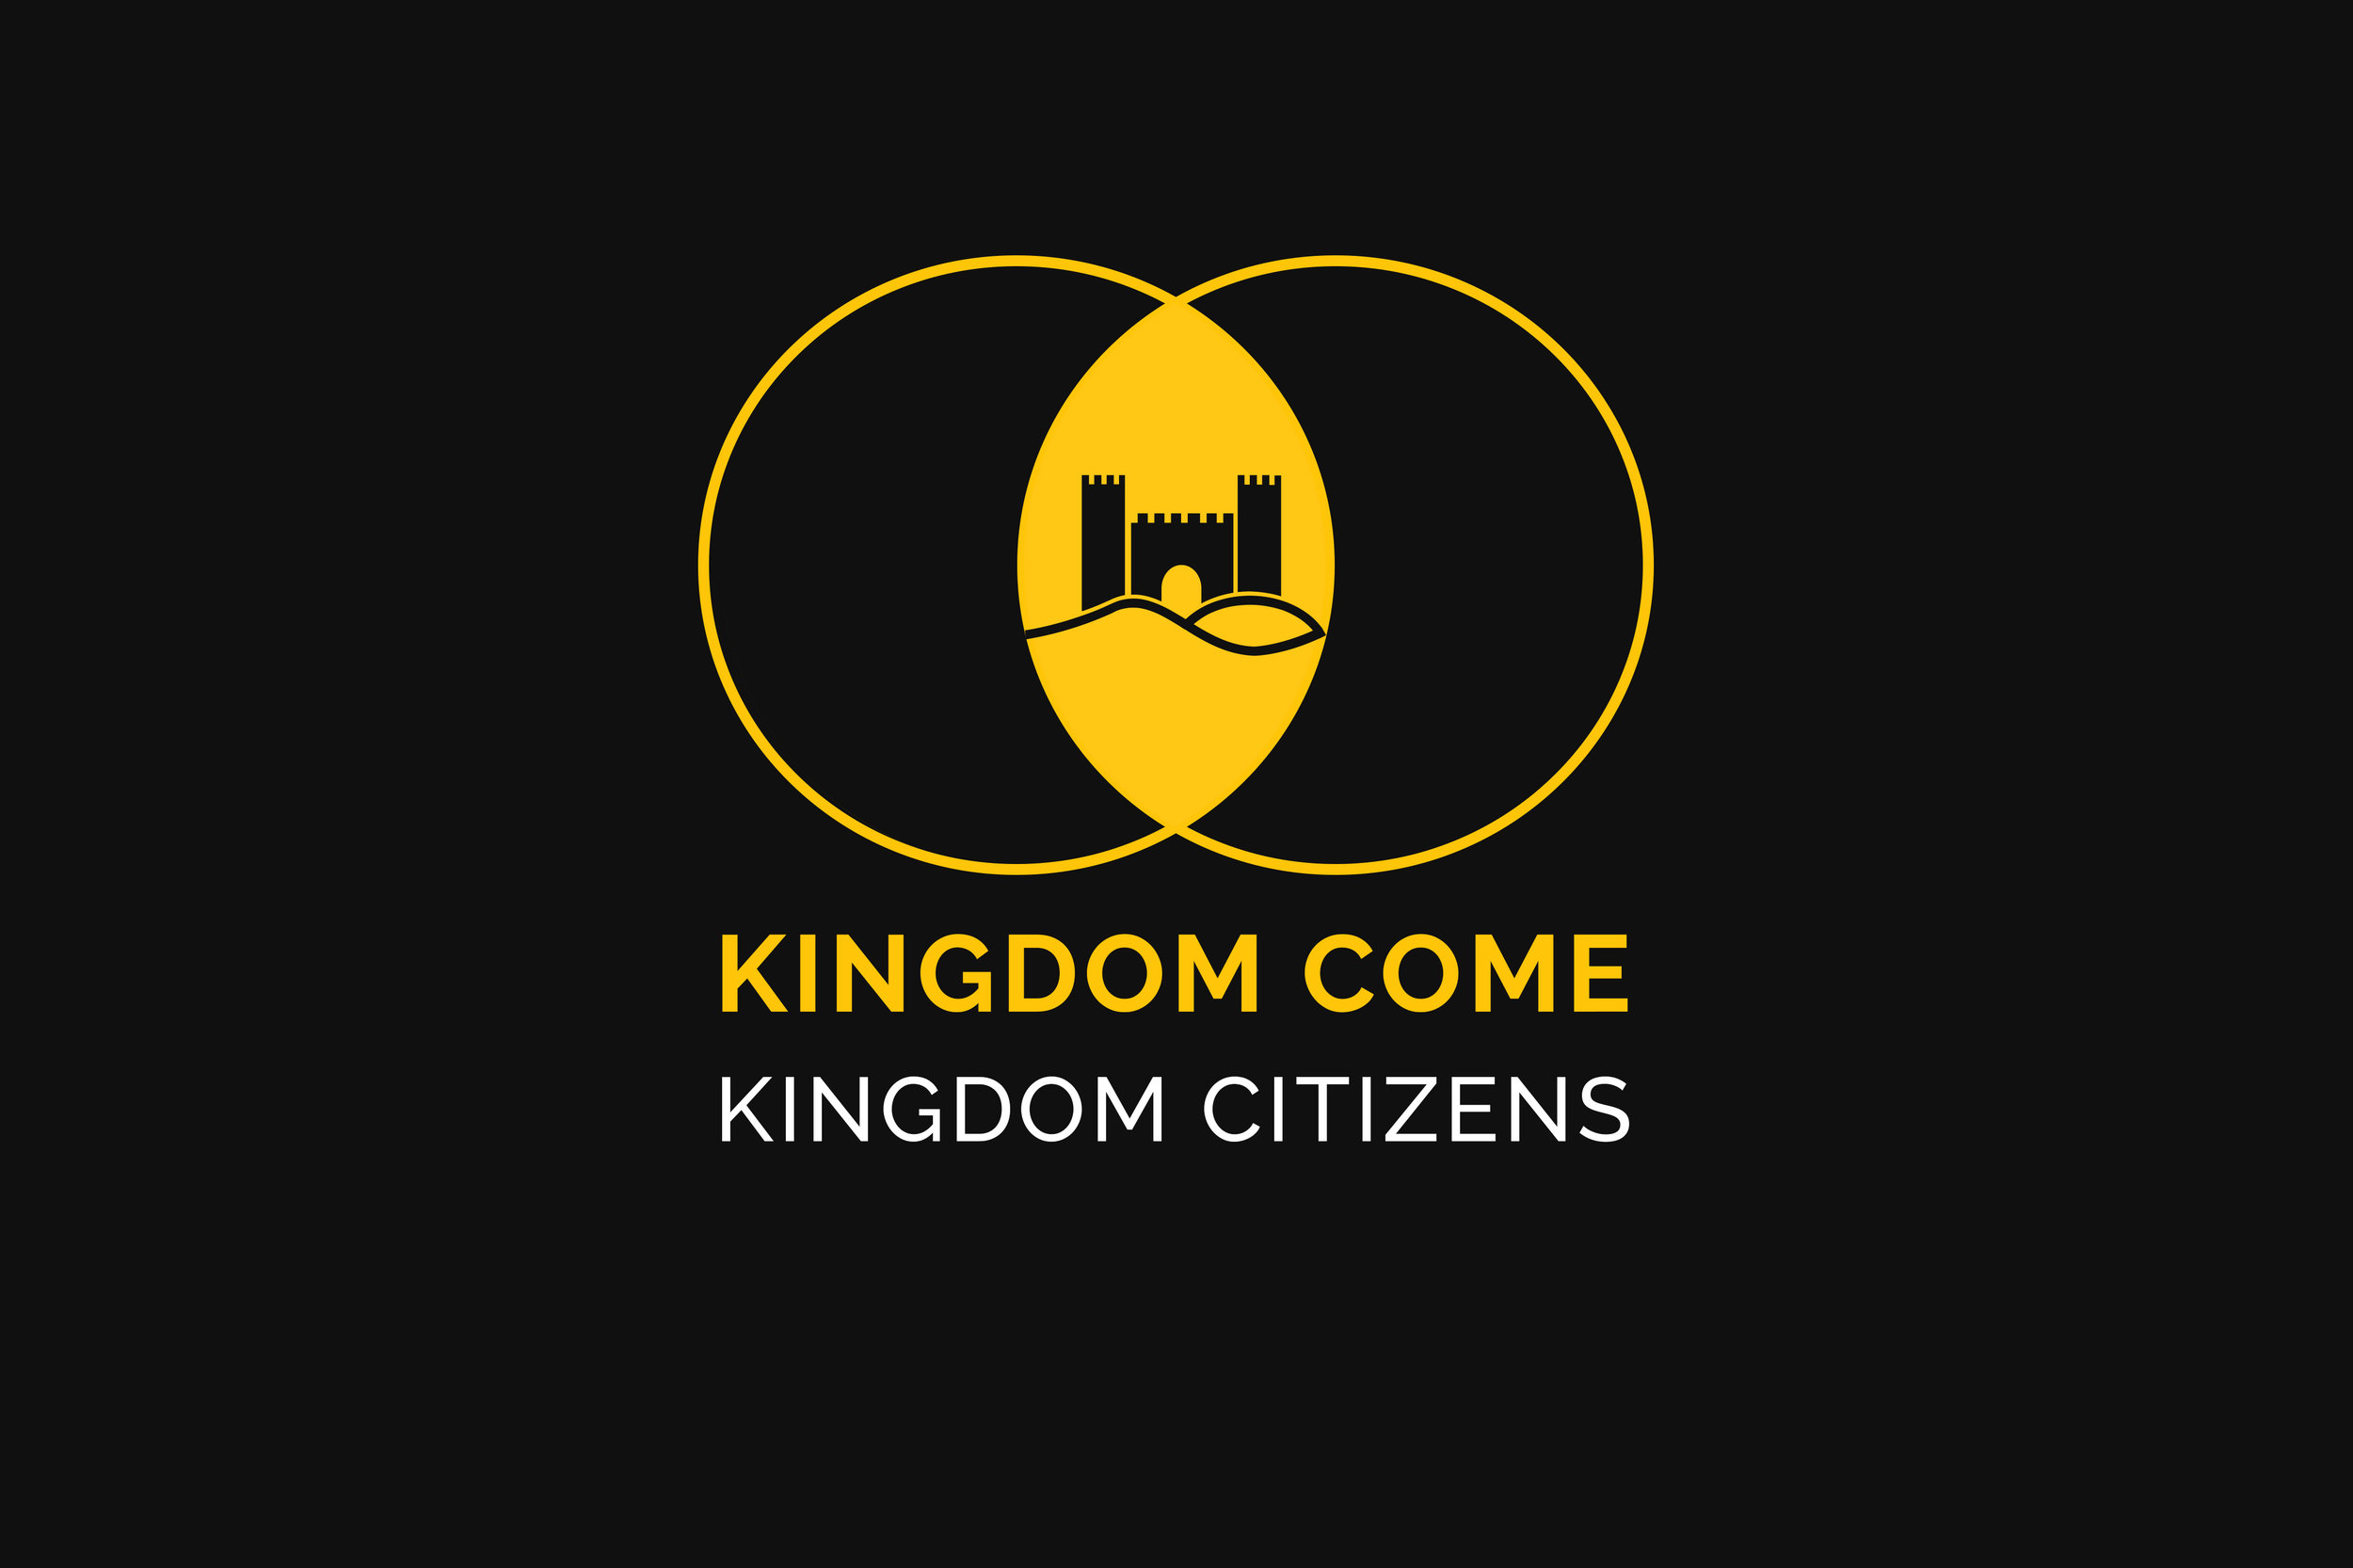 Kingdom-Come-kingdom-citizens.jpg